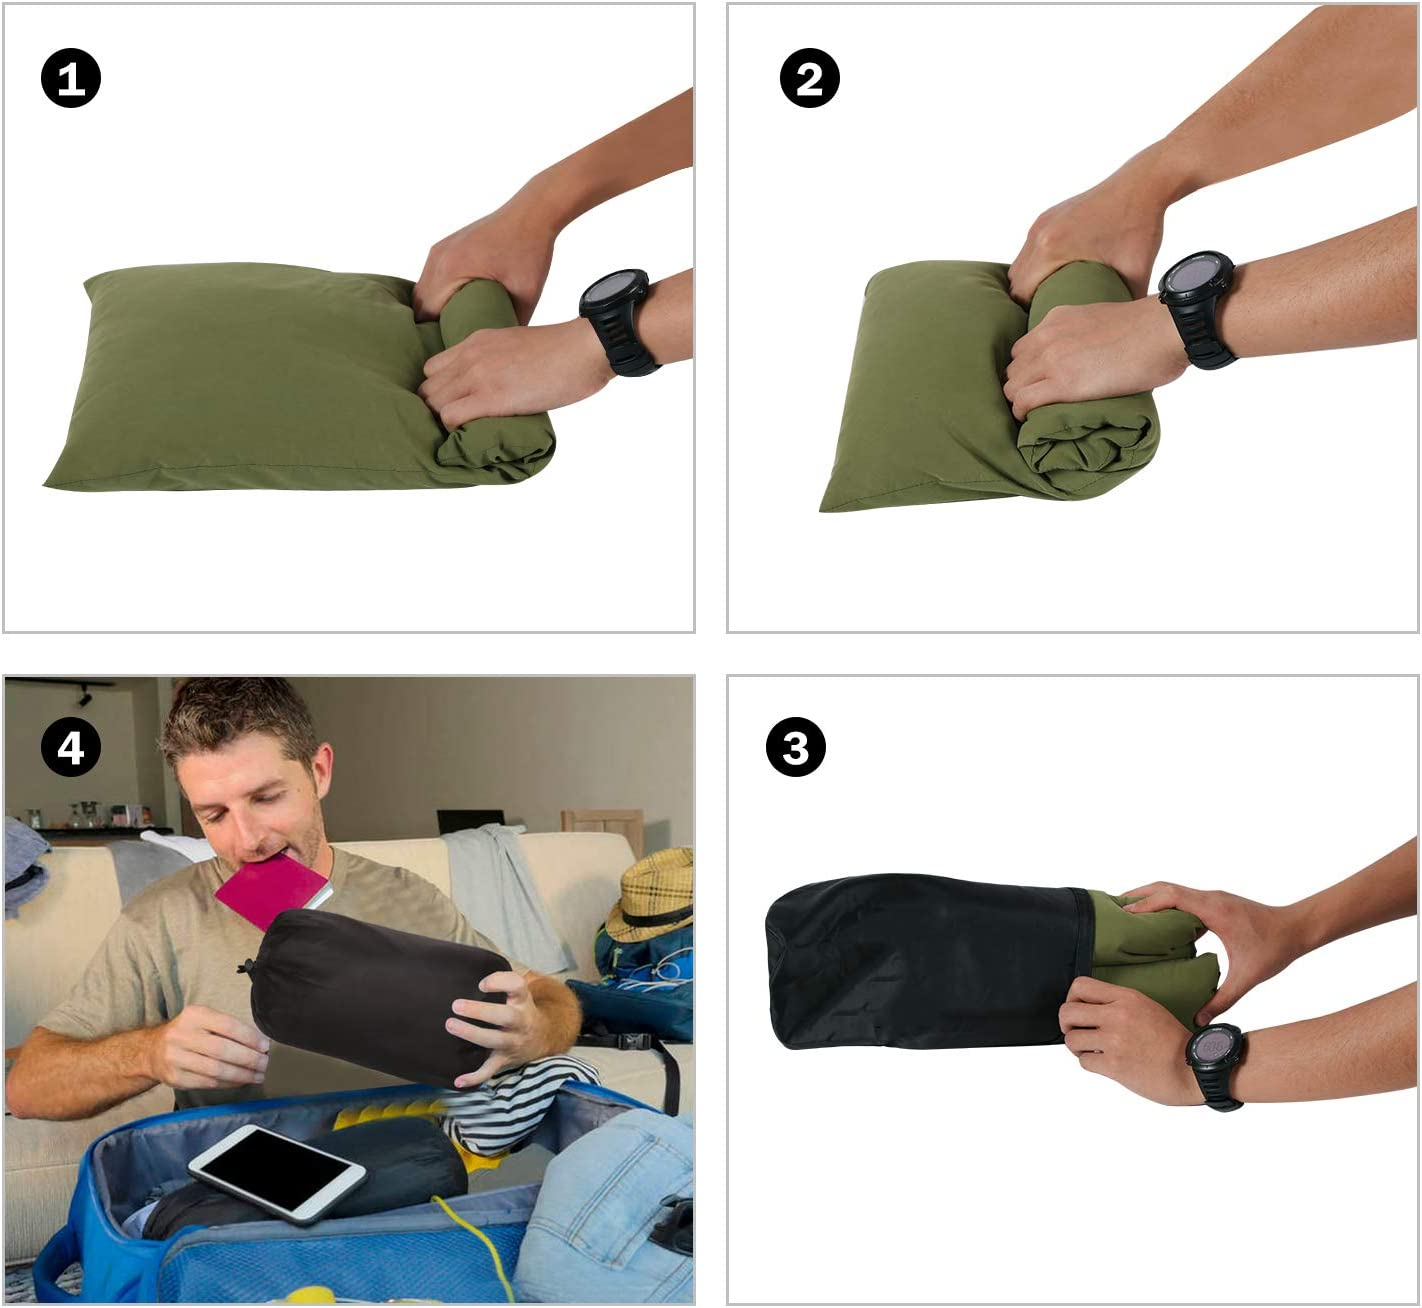 CAMPMAX Small Camping Pillow for Sleeping Comfortable Cotton Lightweight Compressible Travel Pillows with Removable and Washable Pillow Cover Green 1 Set